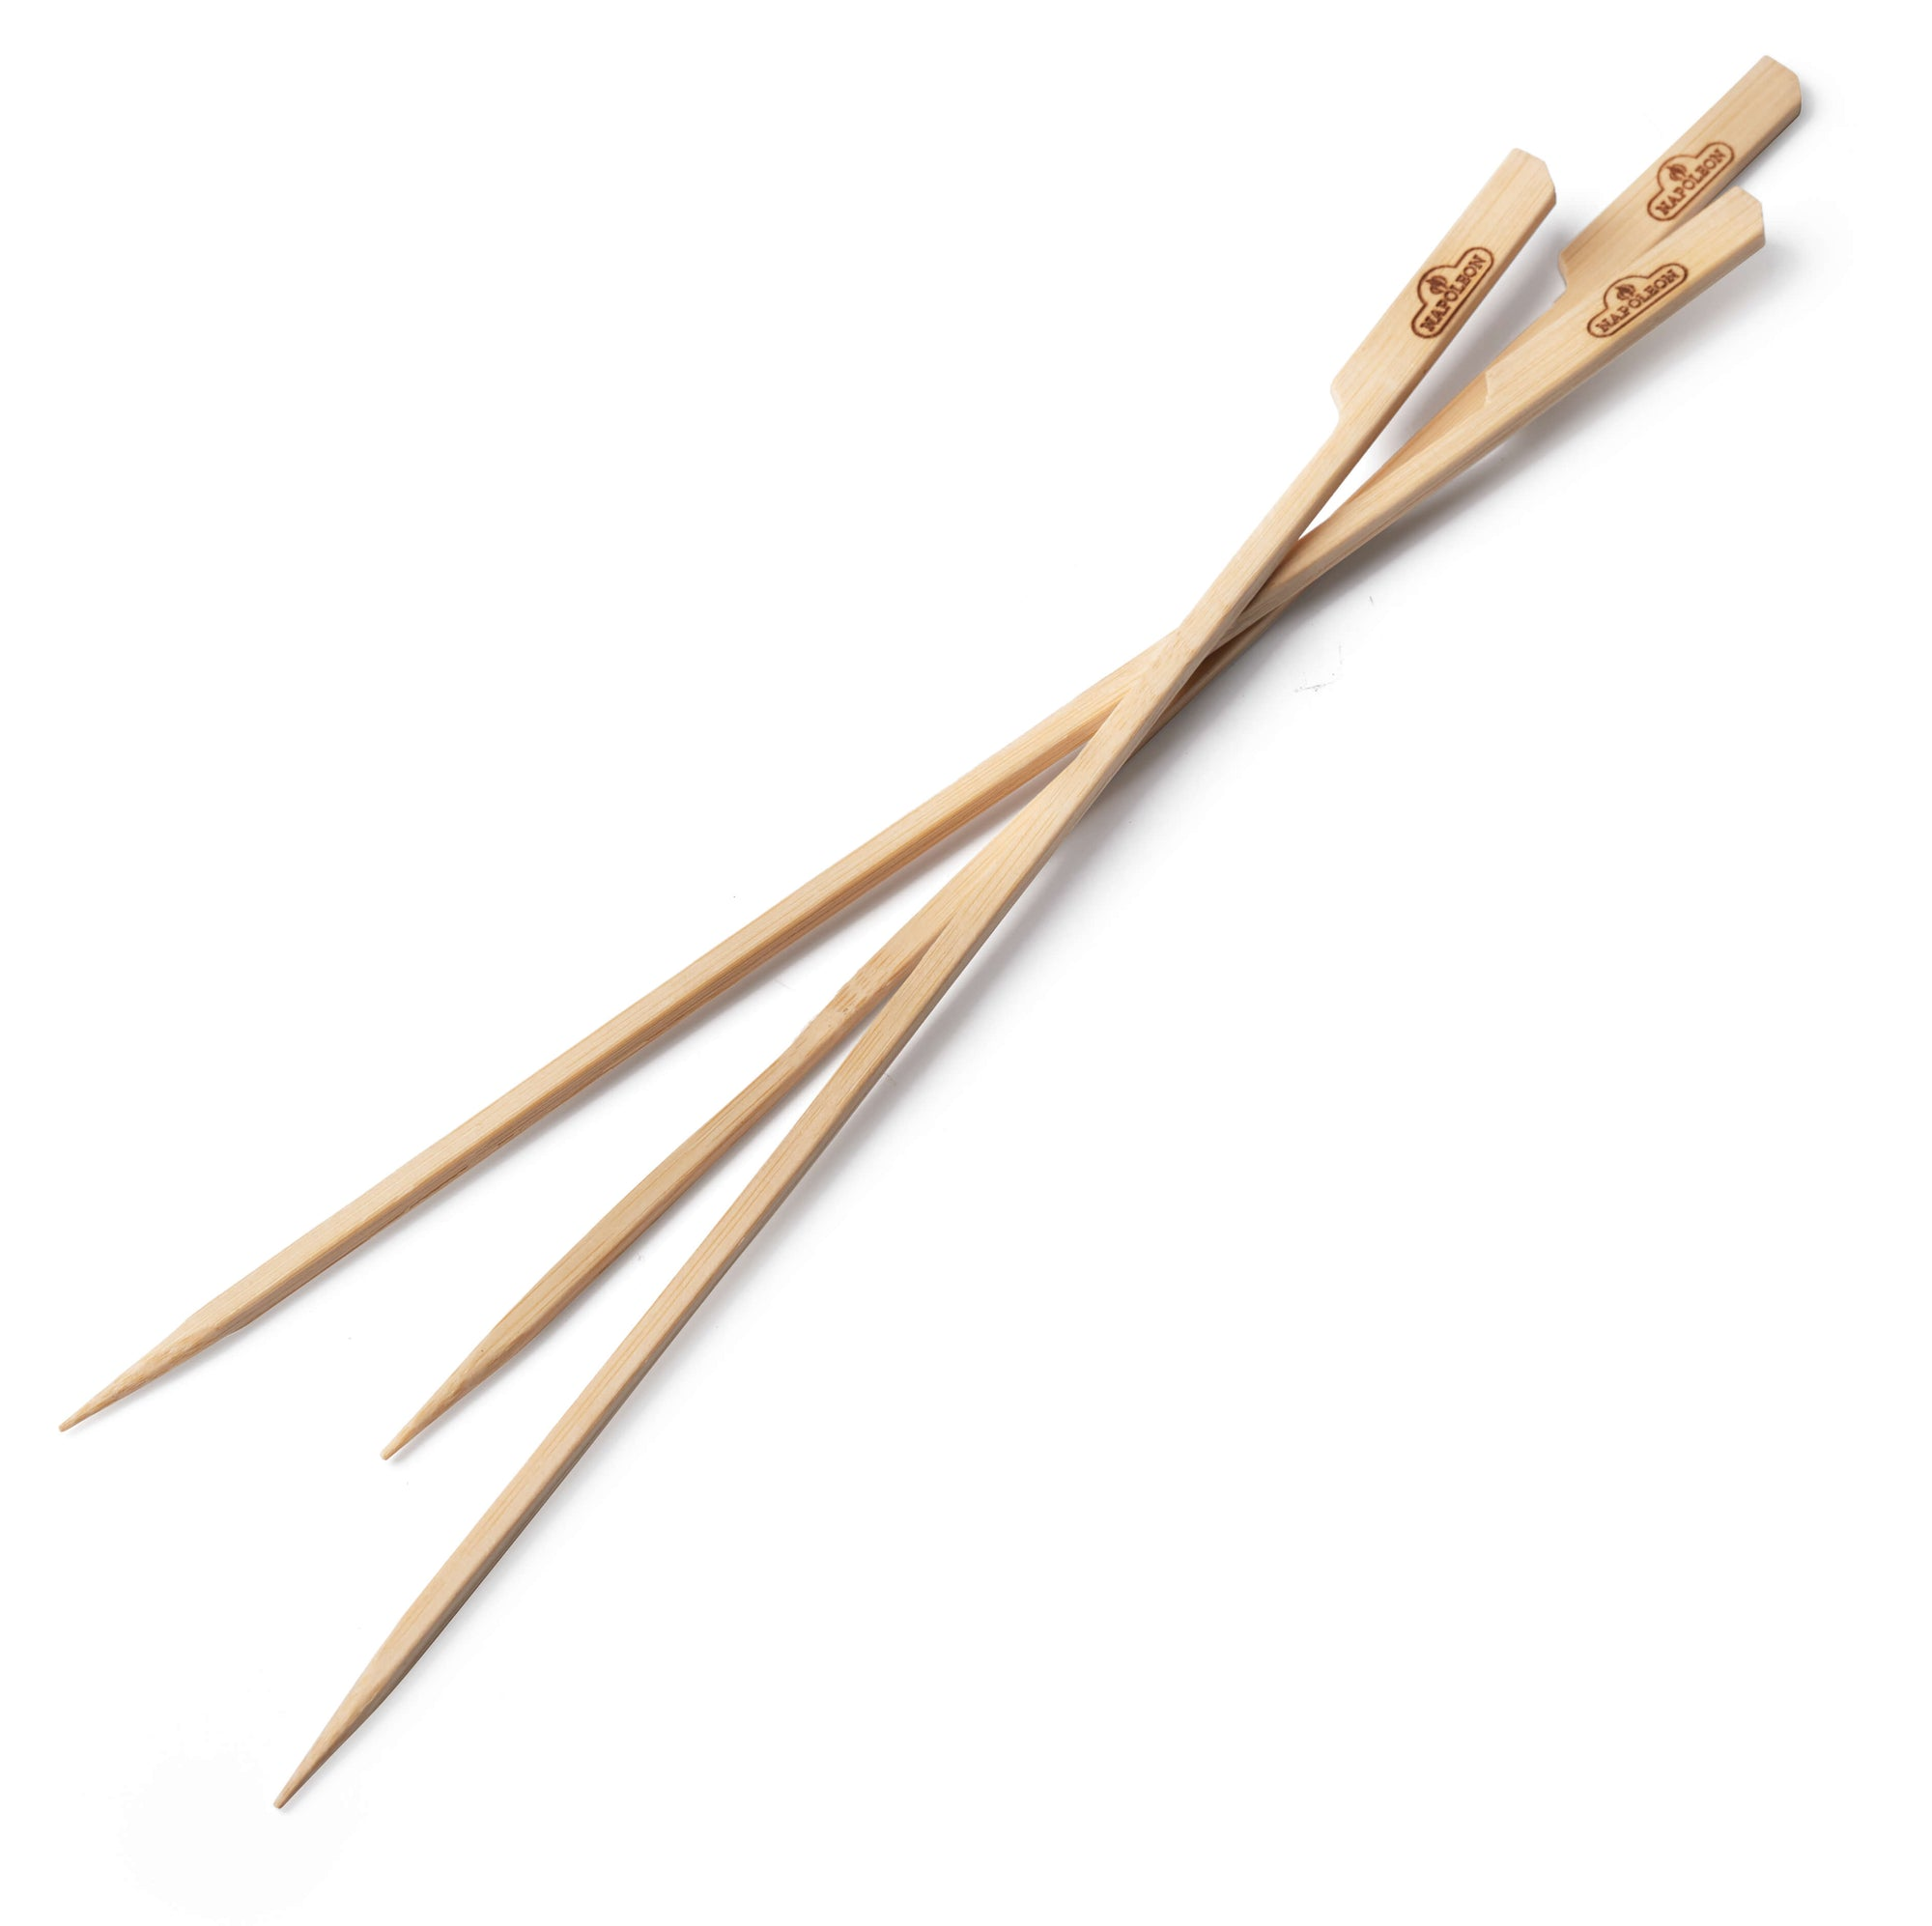 "12"" Bamboo Skewers - 30 in Set"